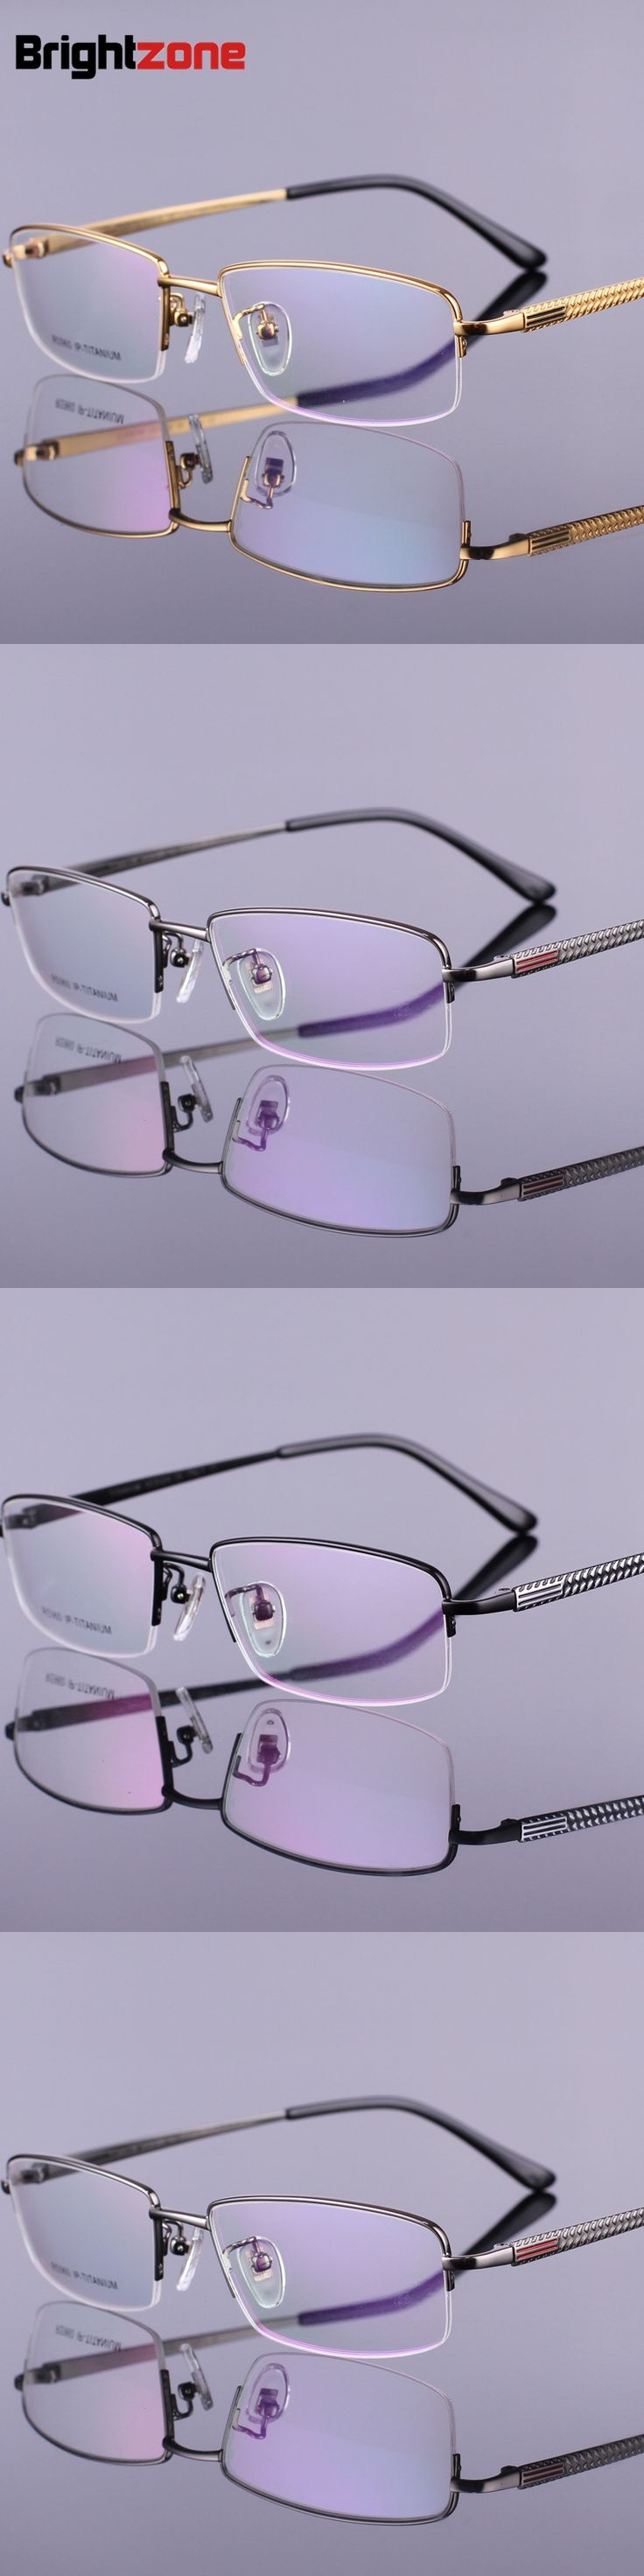 Pure Titanium Myopia Spectacle Frame Men's Half Frame Exceed Light Business Affairs New Pattern On New Promotion Pure Titanium